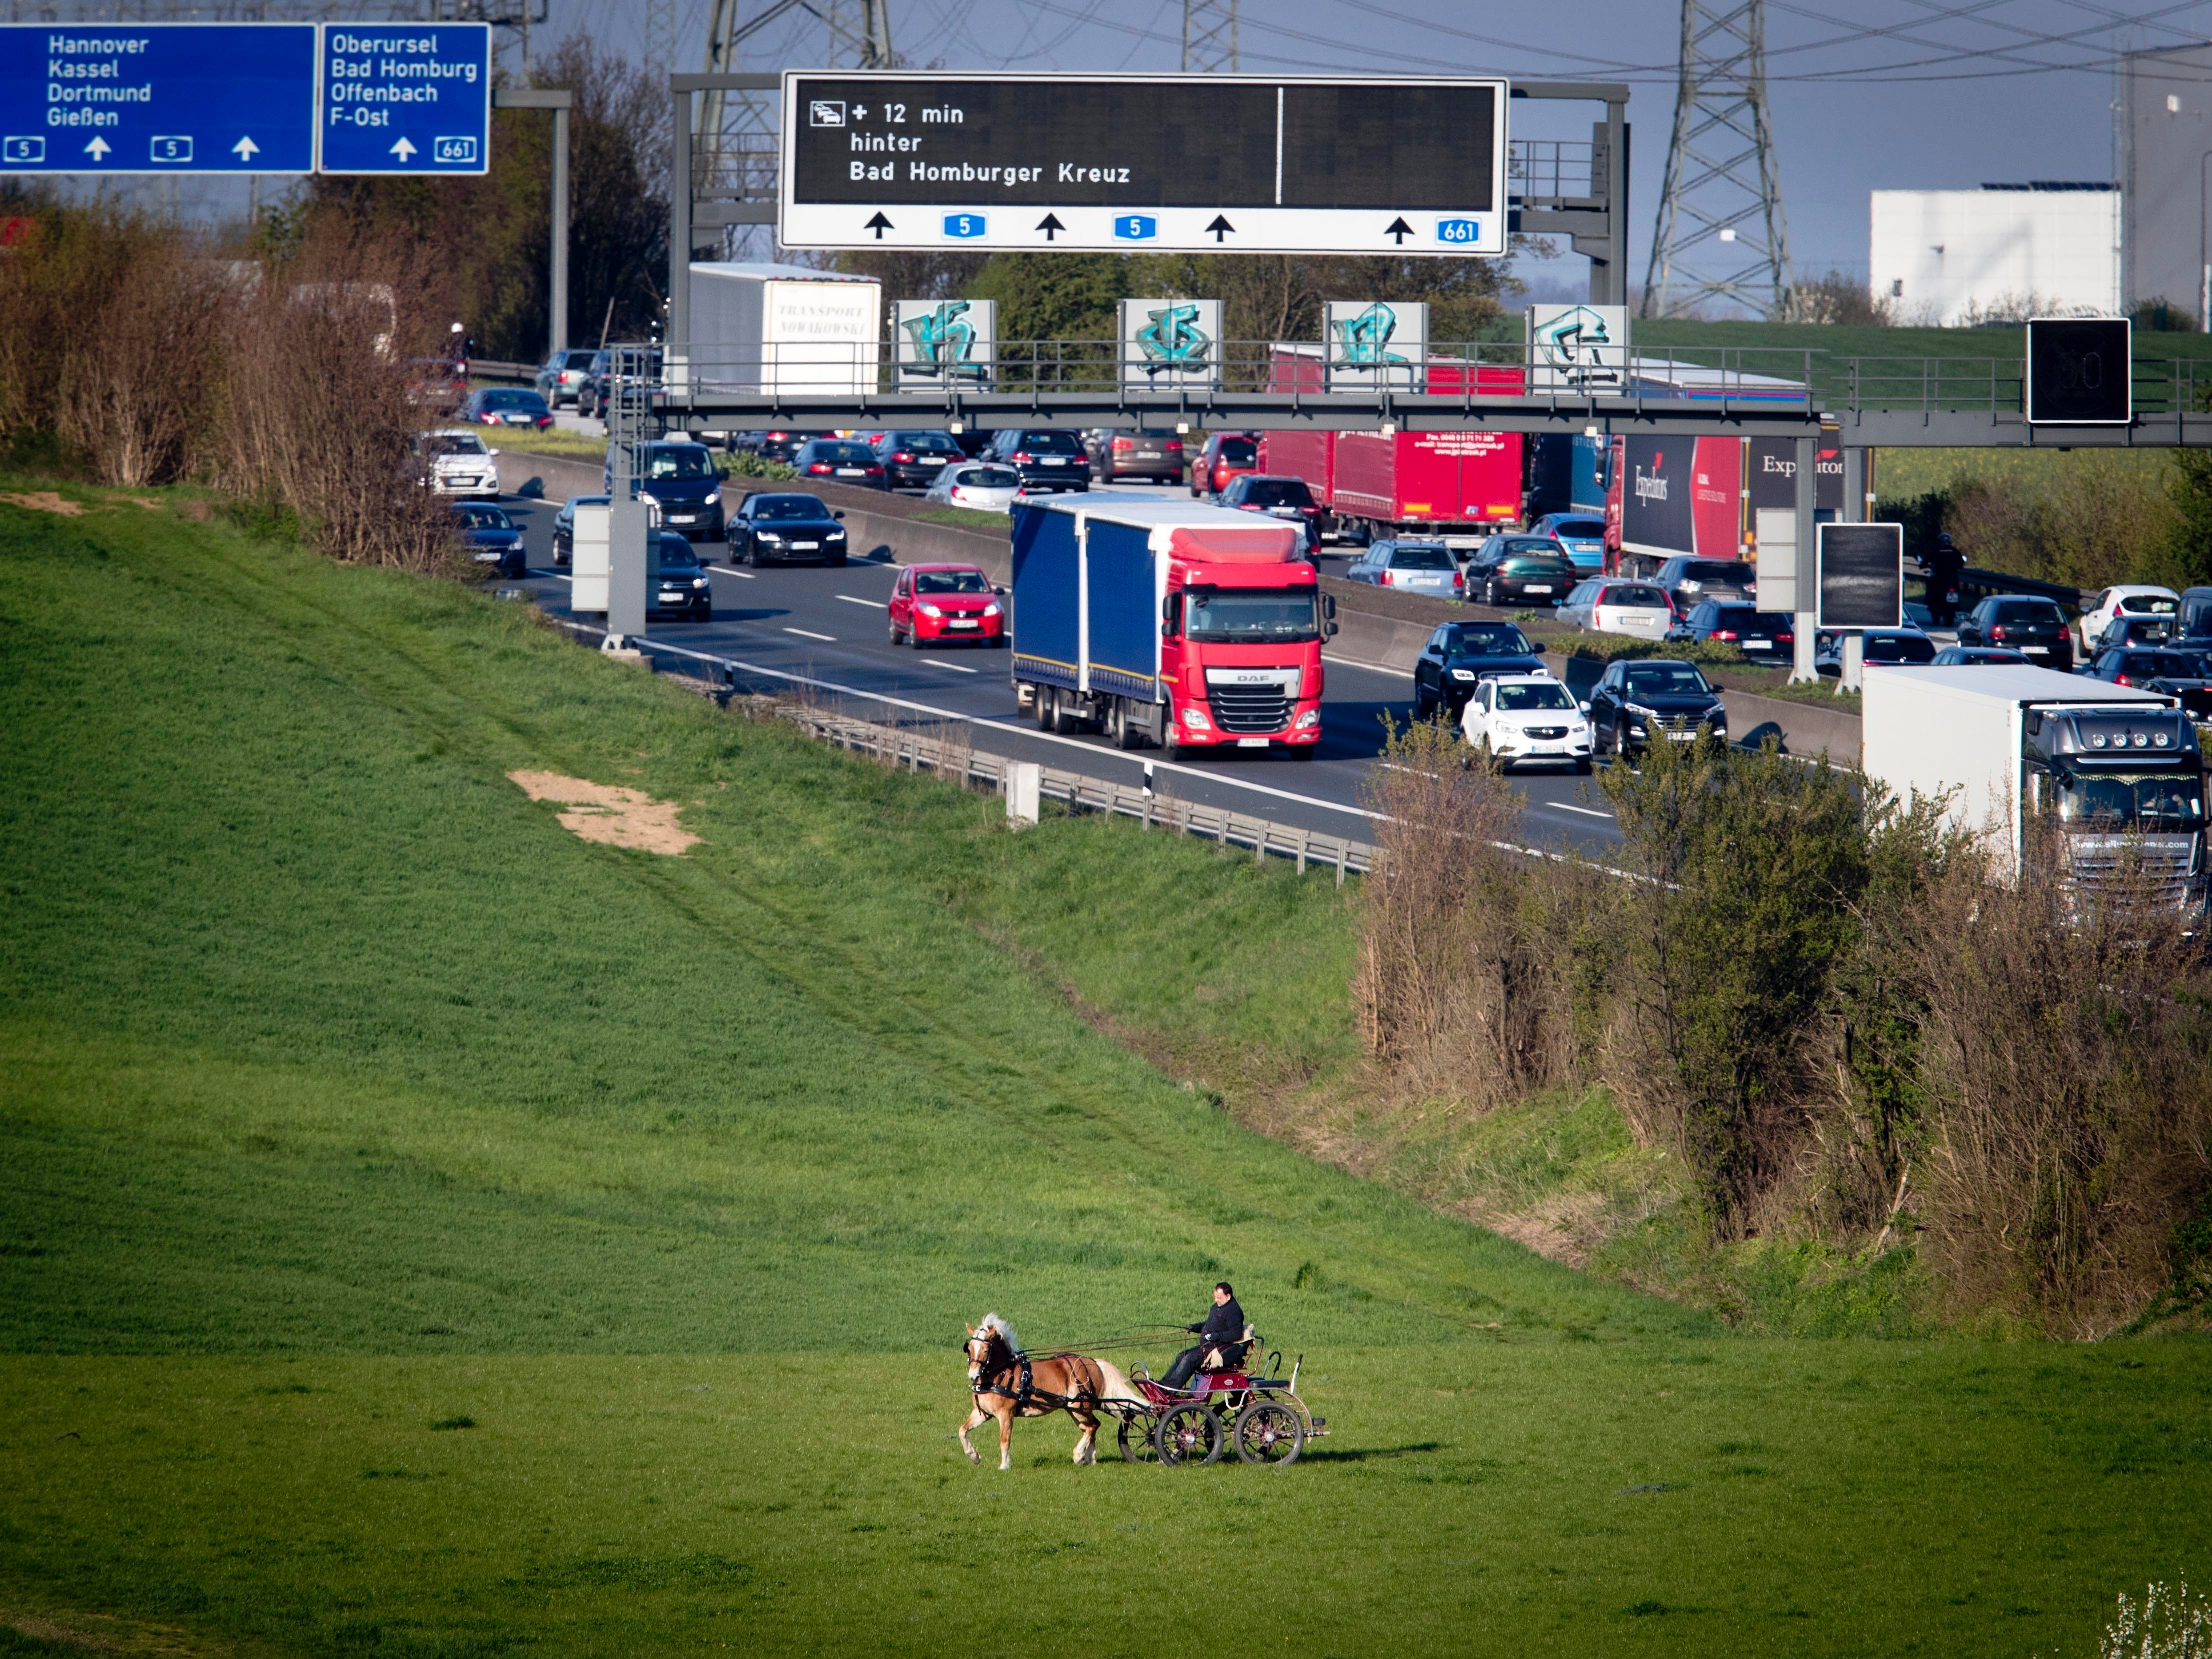 A man rides his horse and carriage over a meadow near the highway in Frankfurt, Germany, Thursday, April 11, 2019.